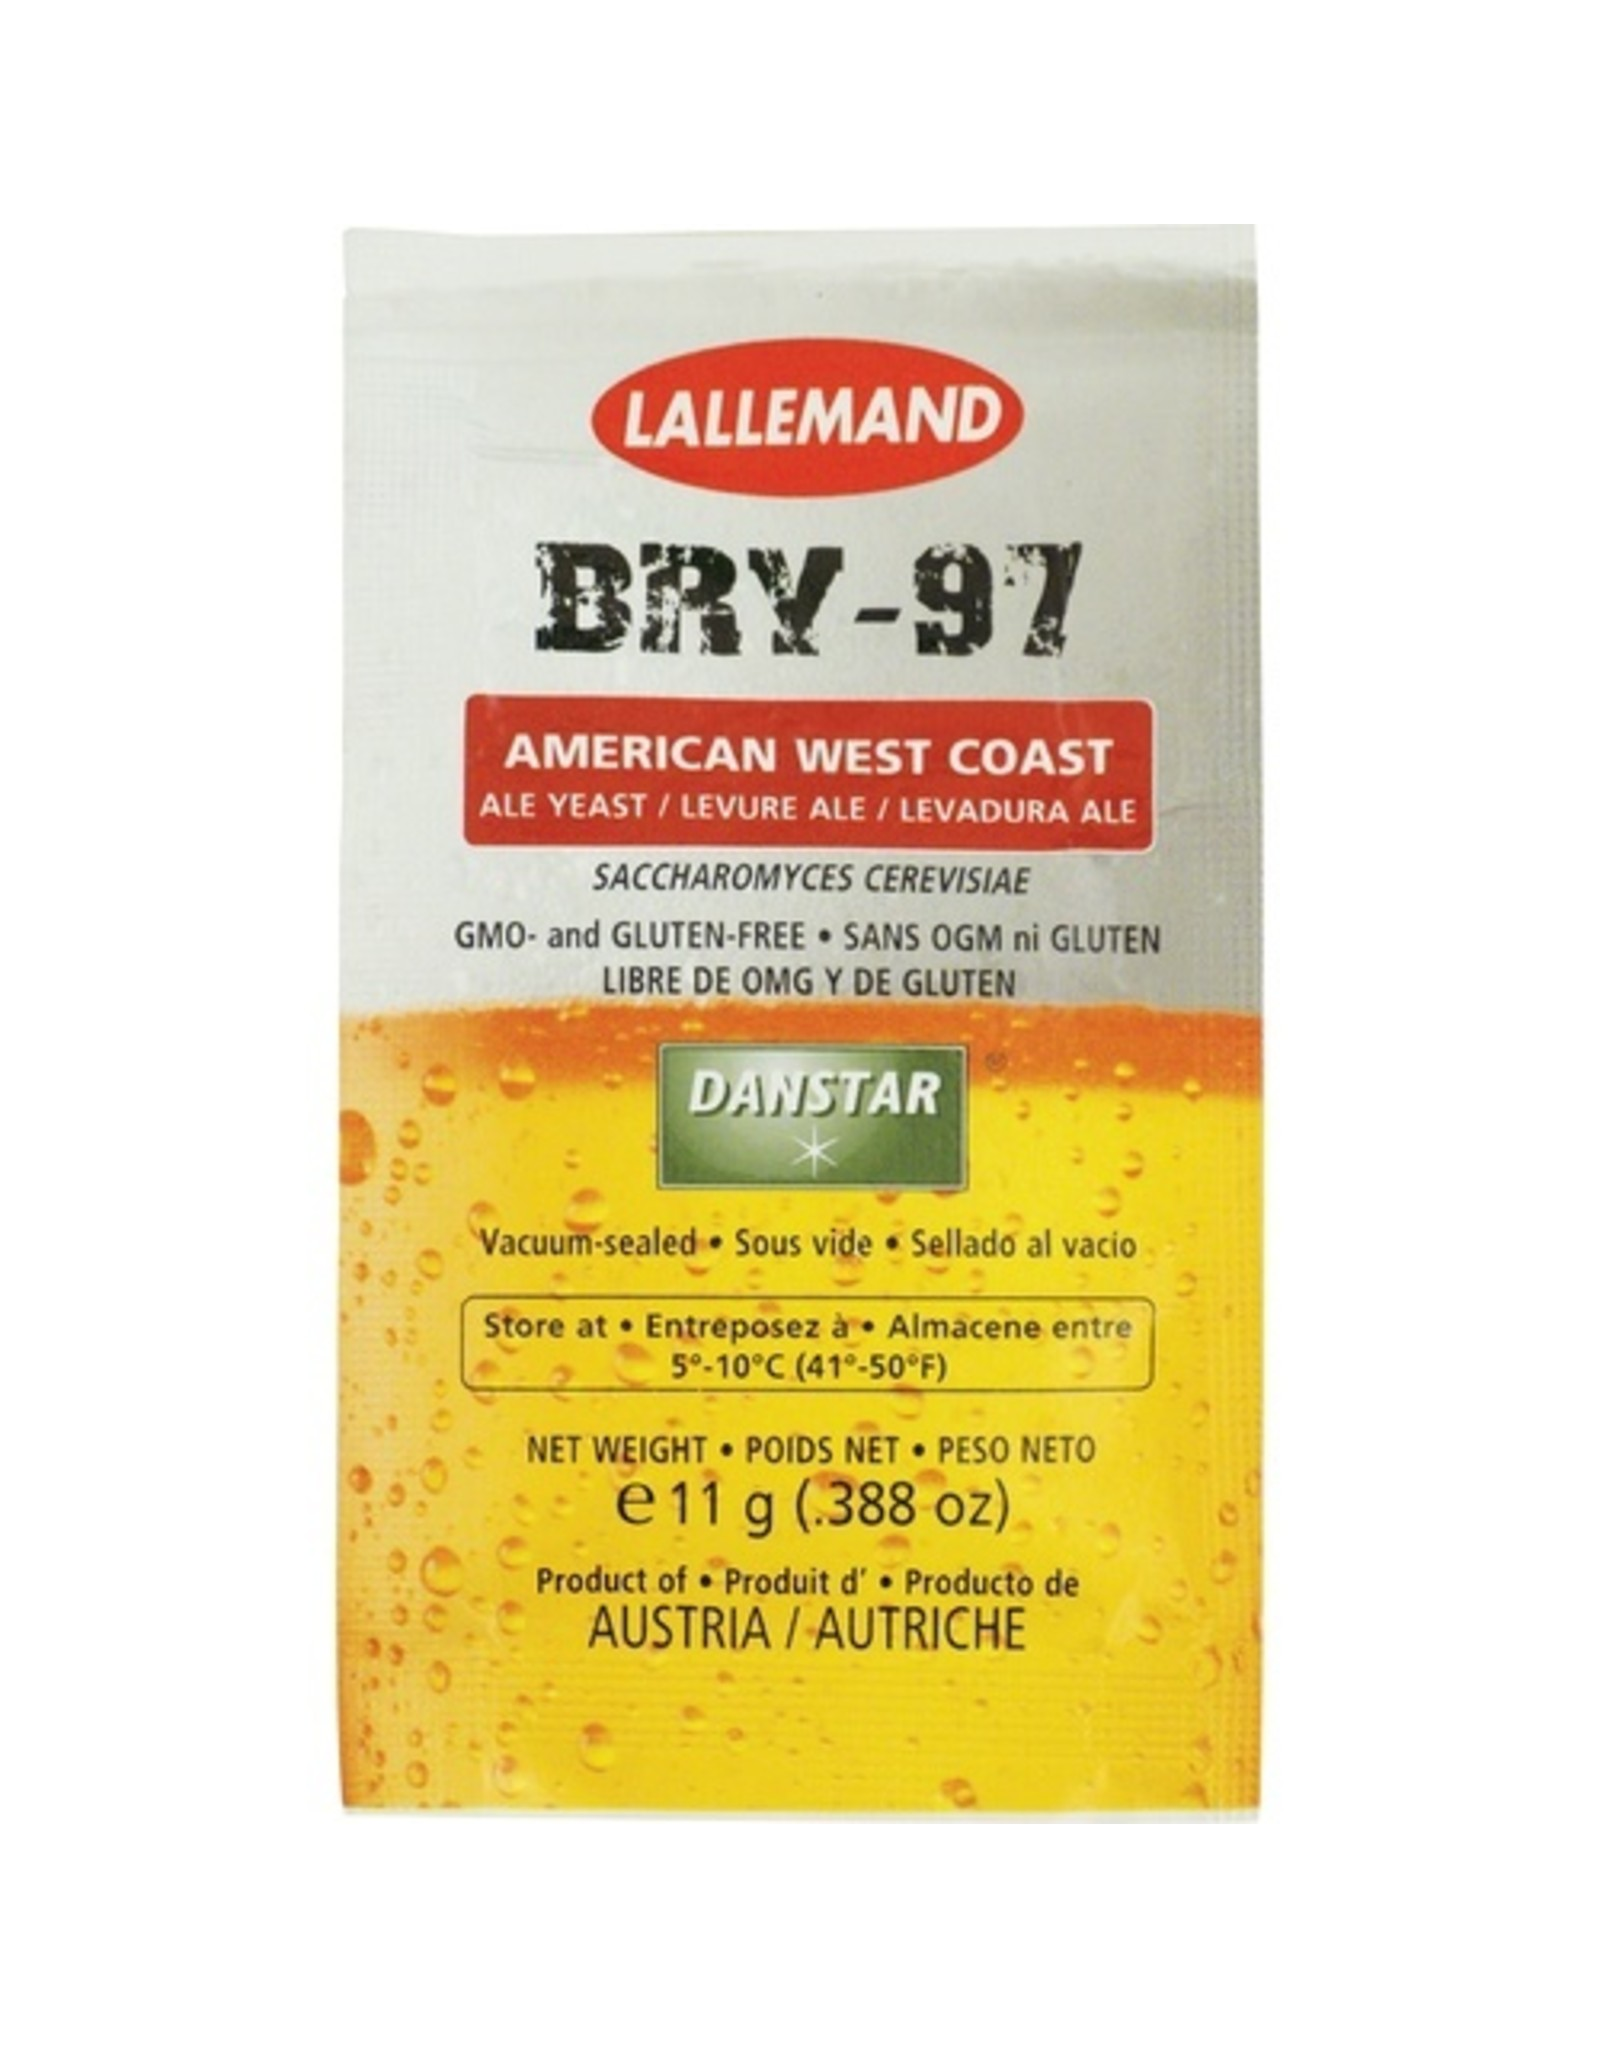 Lallemand BRY-97 West Coast Ale Yeast 11g